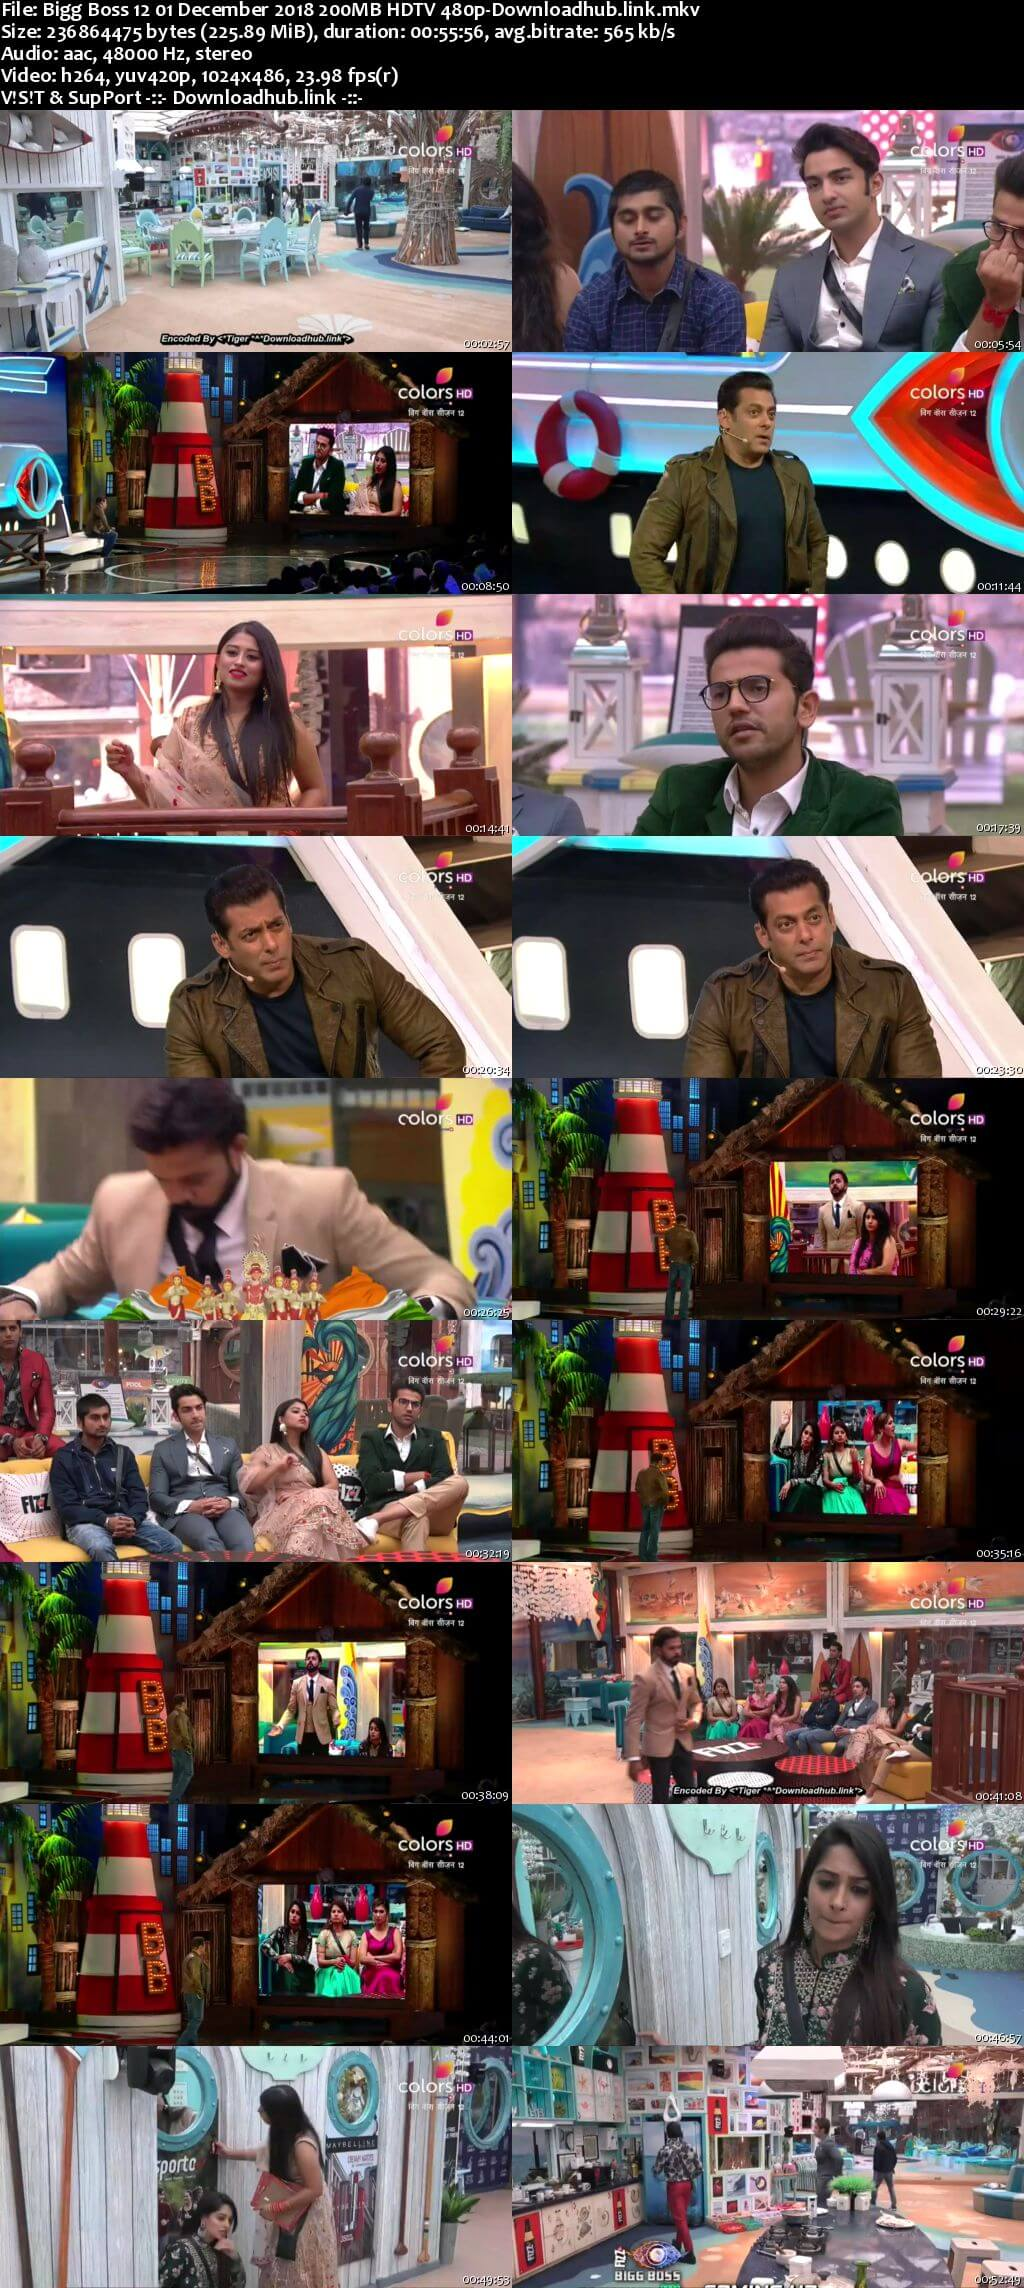 Bigg Boss 12 01 December 2018 Episode 76 HDTV 480p